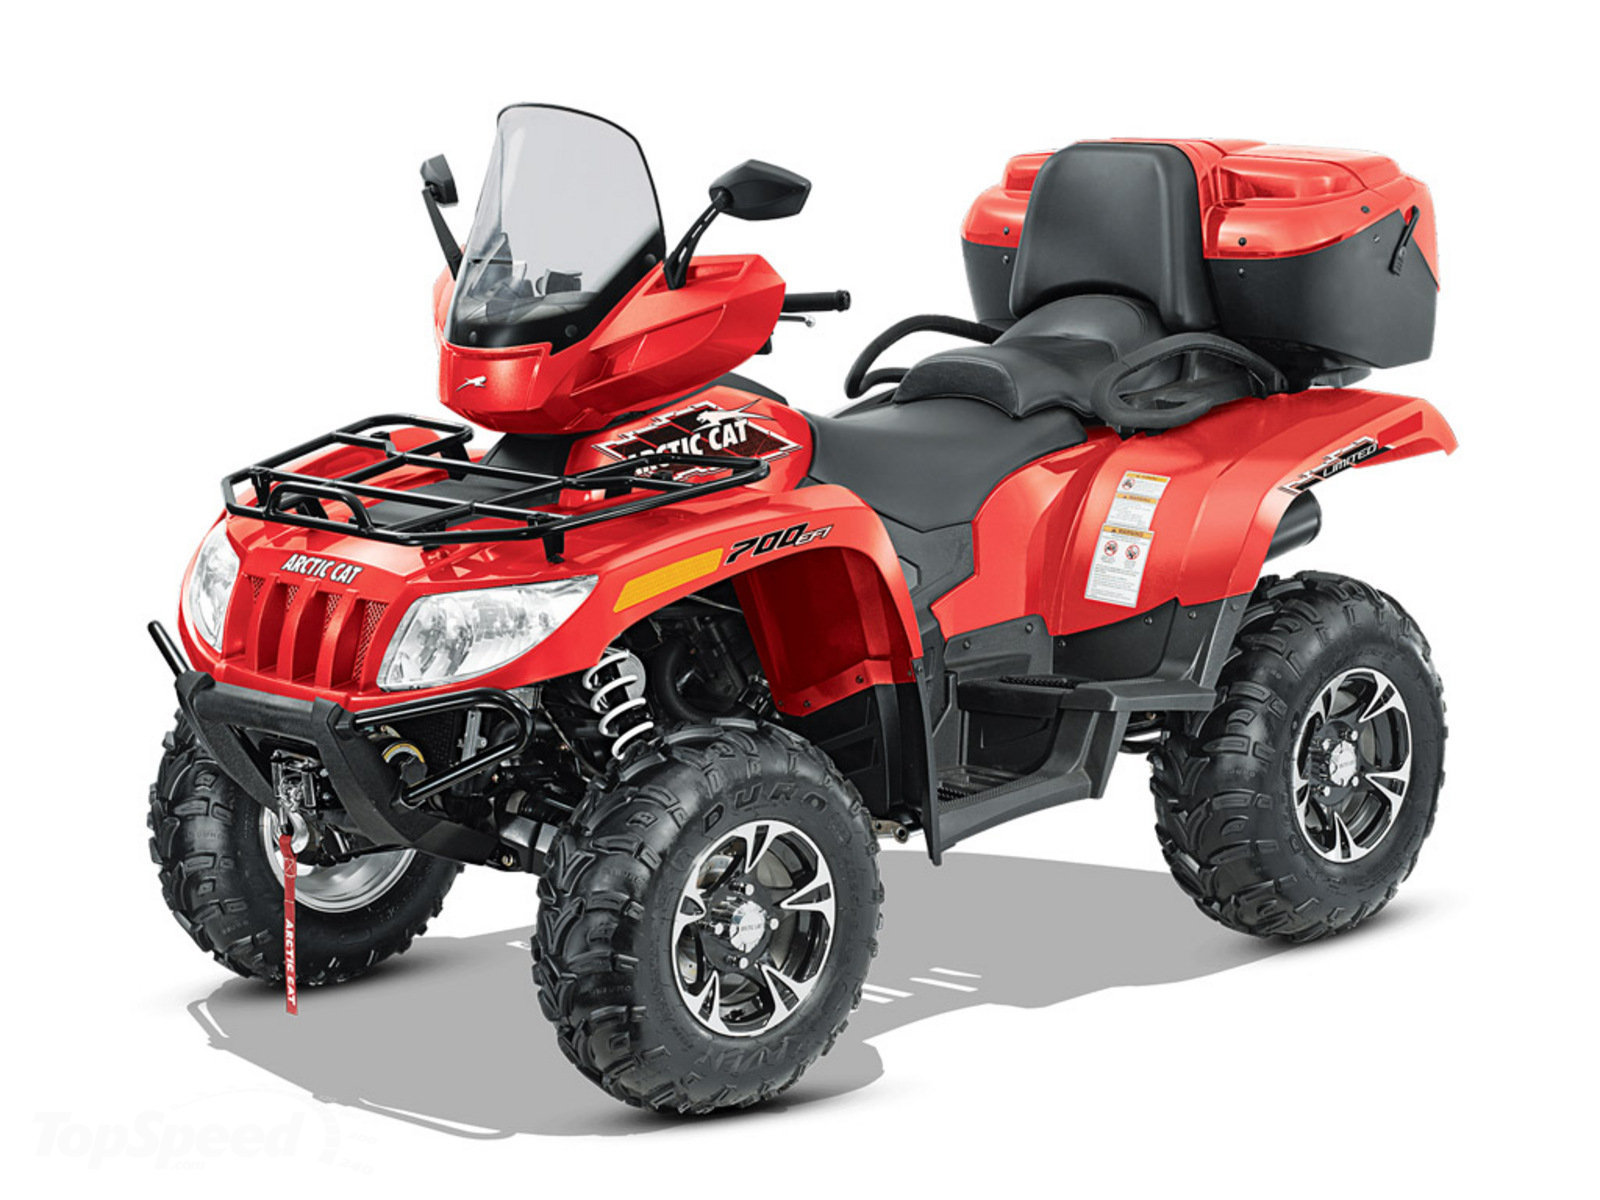 2015 arctic cat trv 700 limited eps review top speed. Black Bedroom Furniture Sets. Home Design Ideas